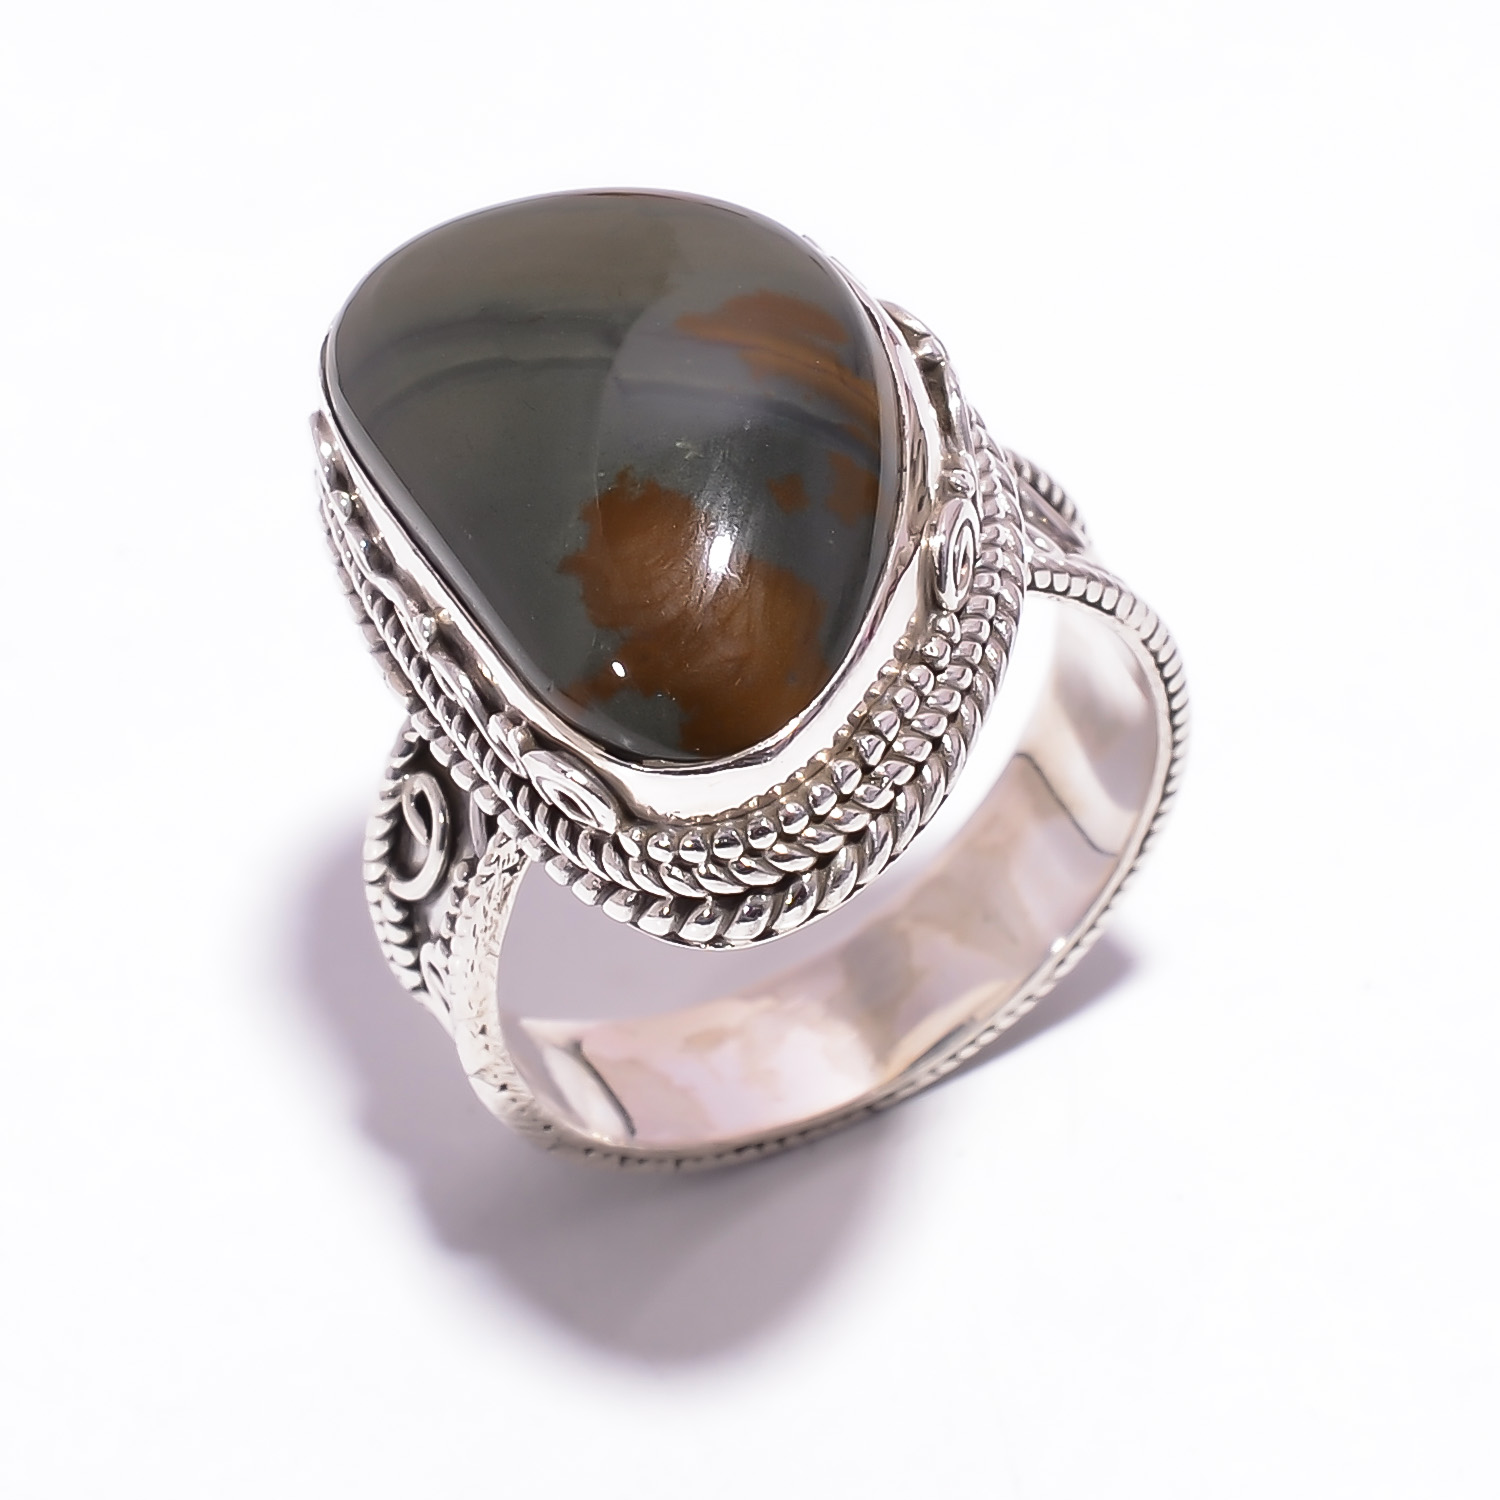 Larsonite Gemstone 925 Sterling Silver Ring Size US 9